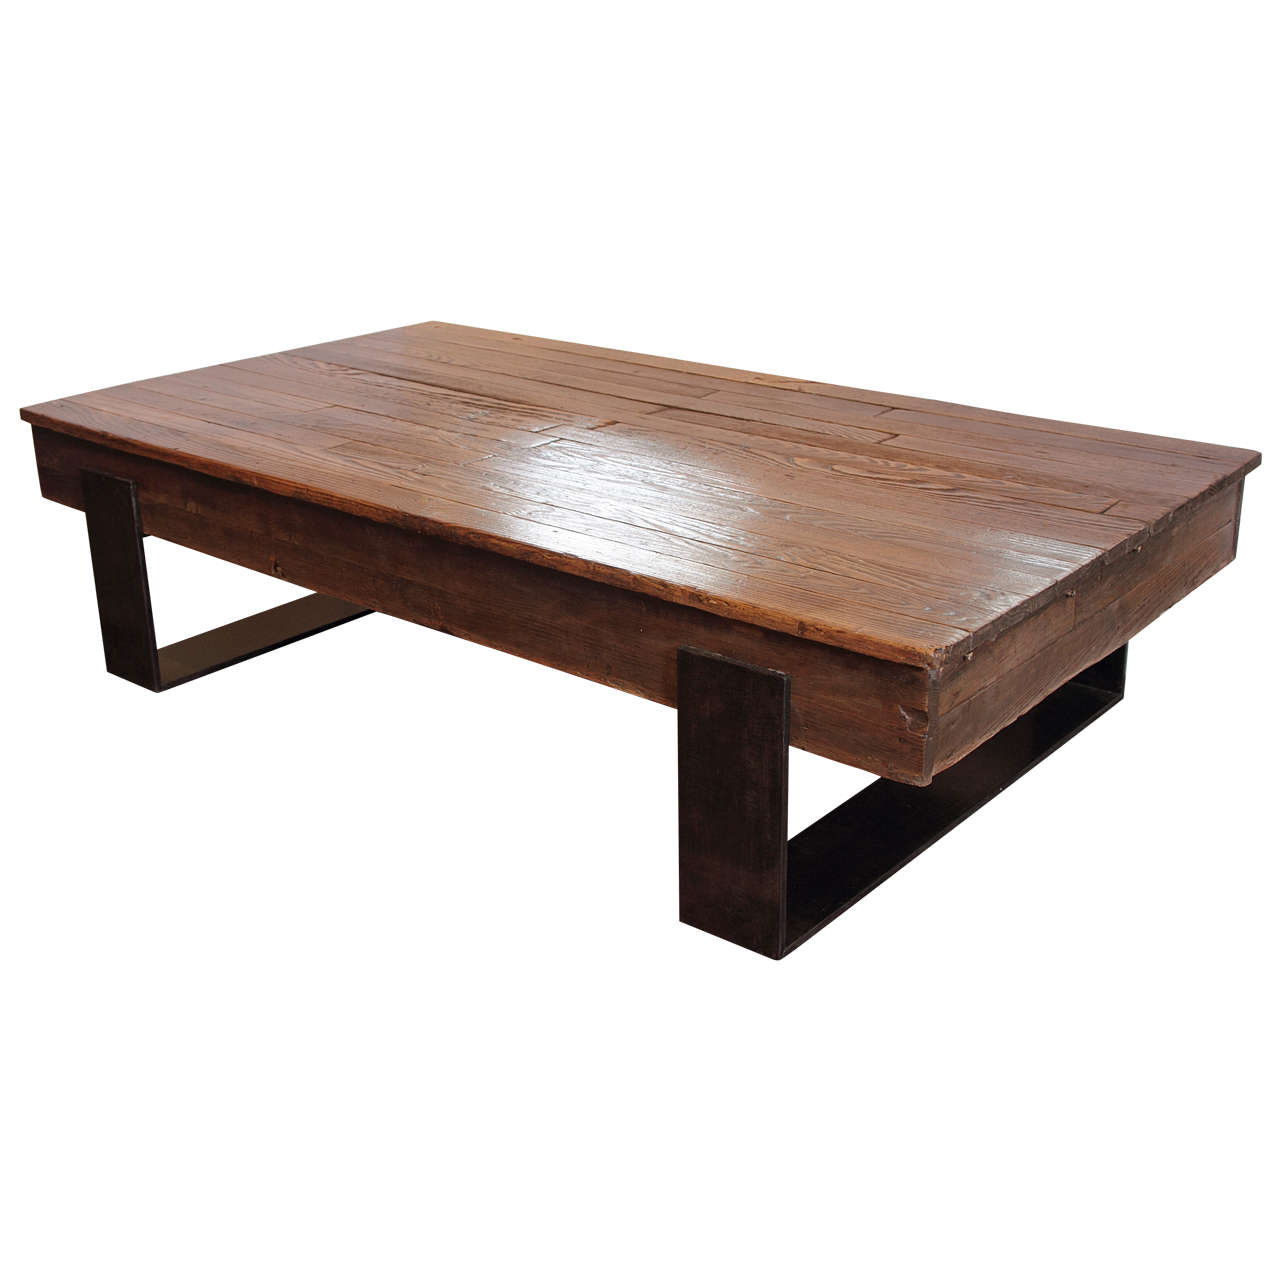 French Proctor 39 S Oak Coffee Table On Metal Stand At 1stdibs